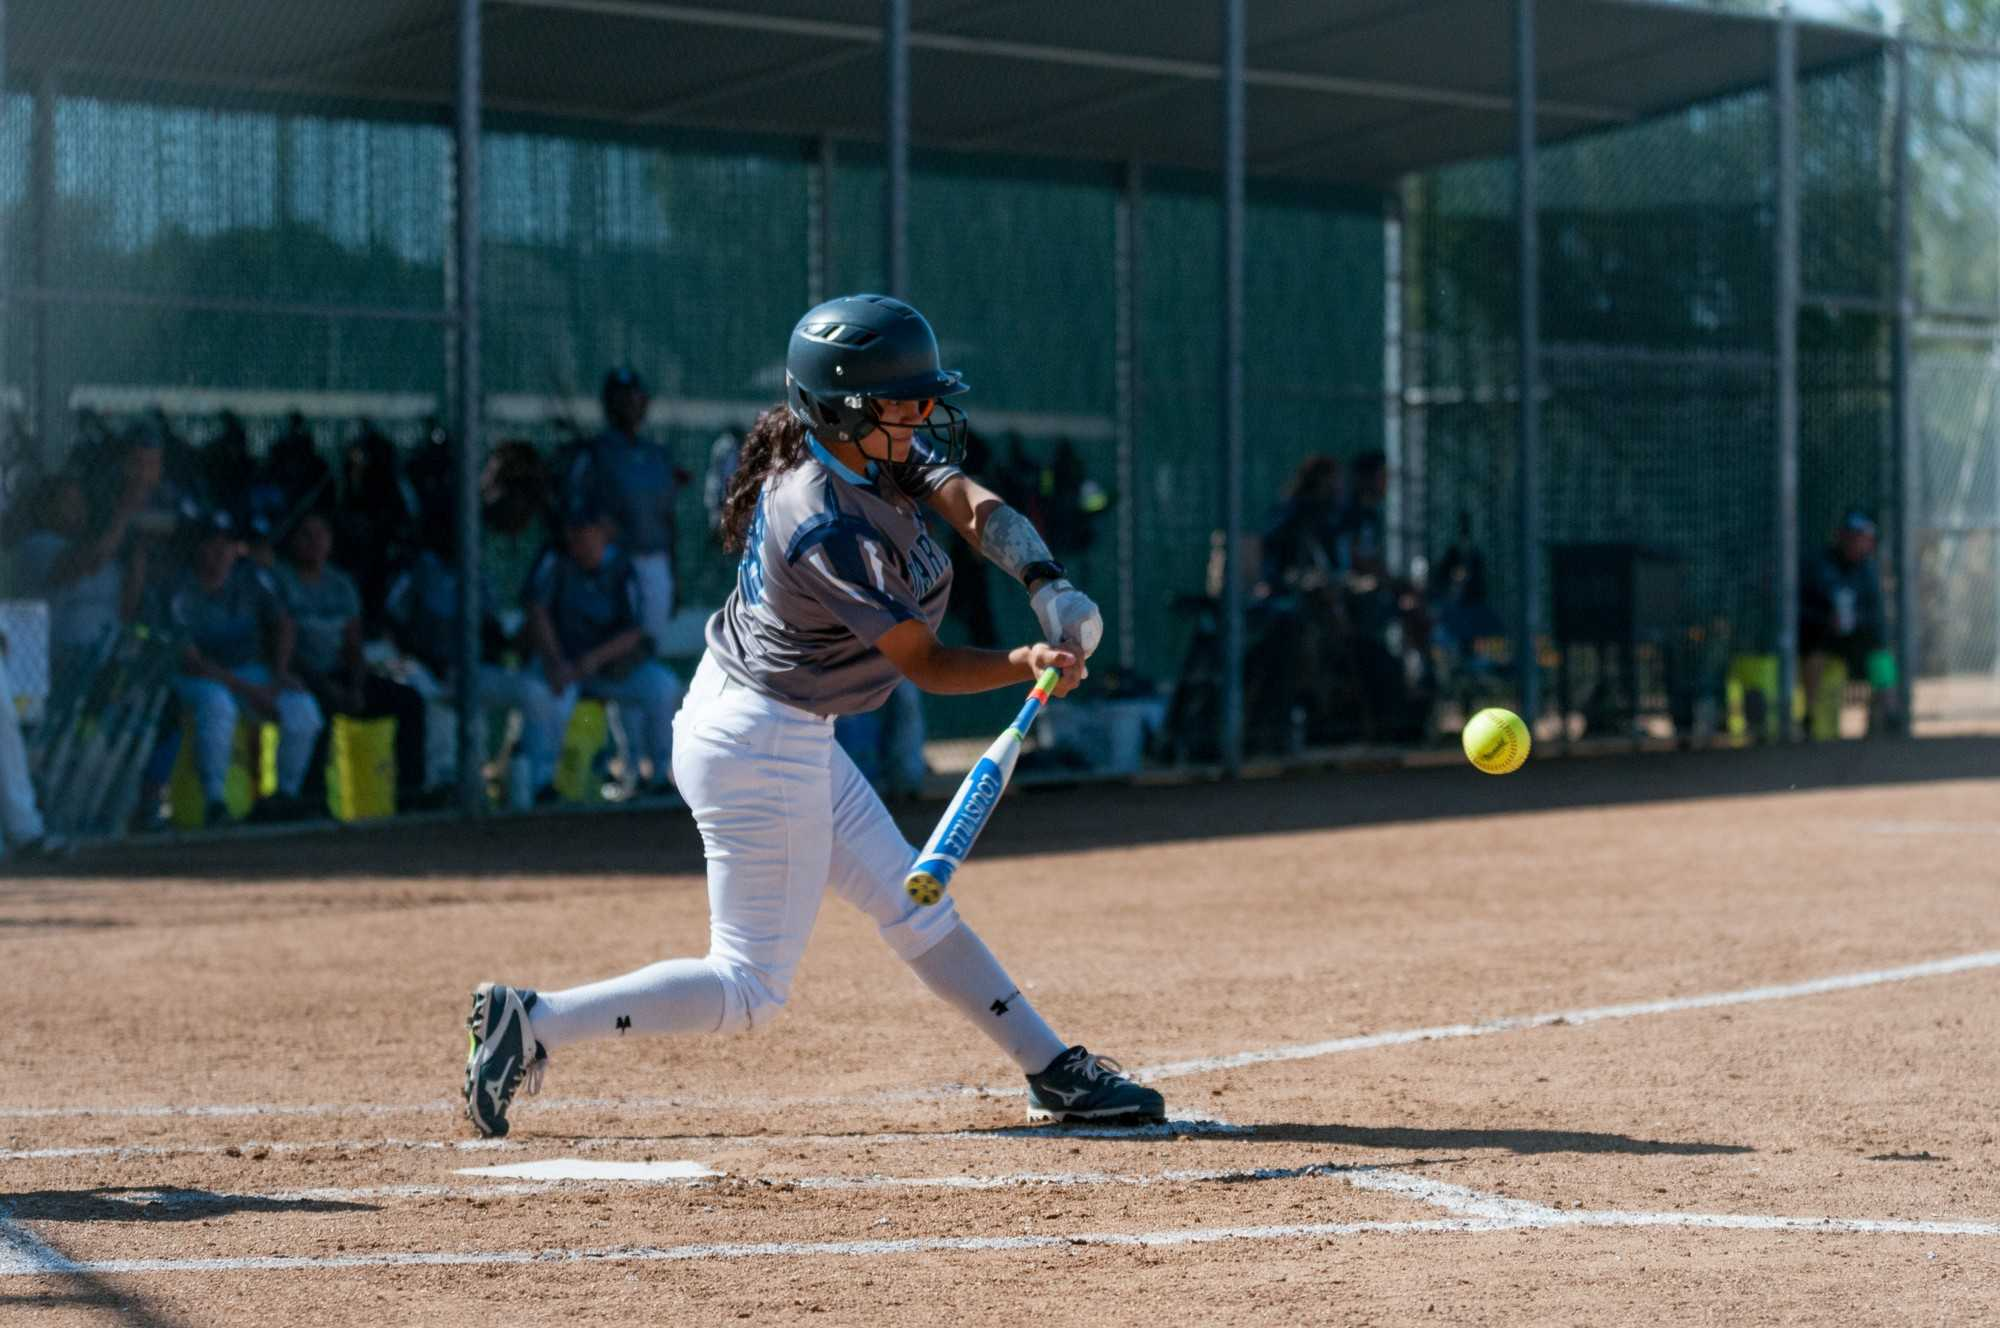 El Camino softball team dominates L.A. Harbor College for its fifth straight conference win